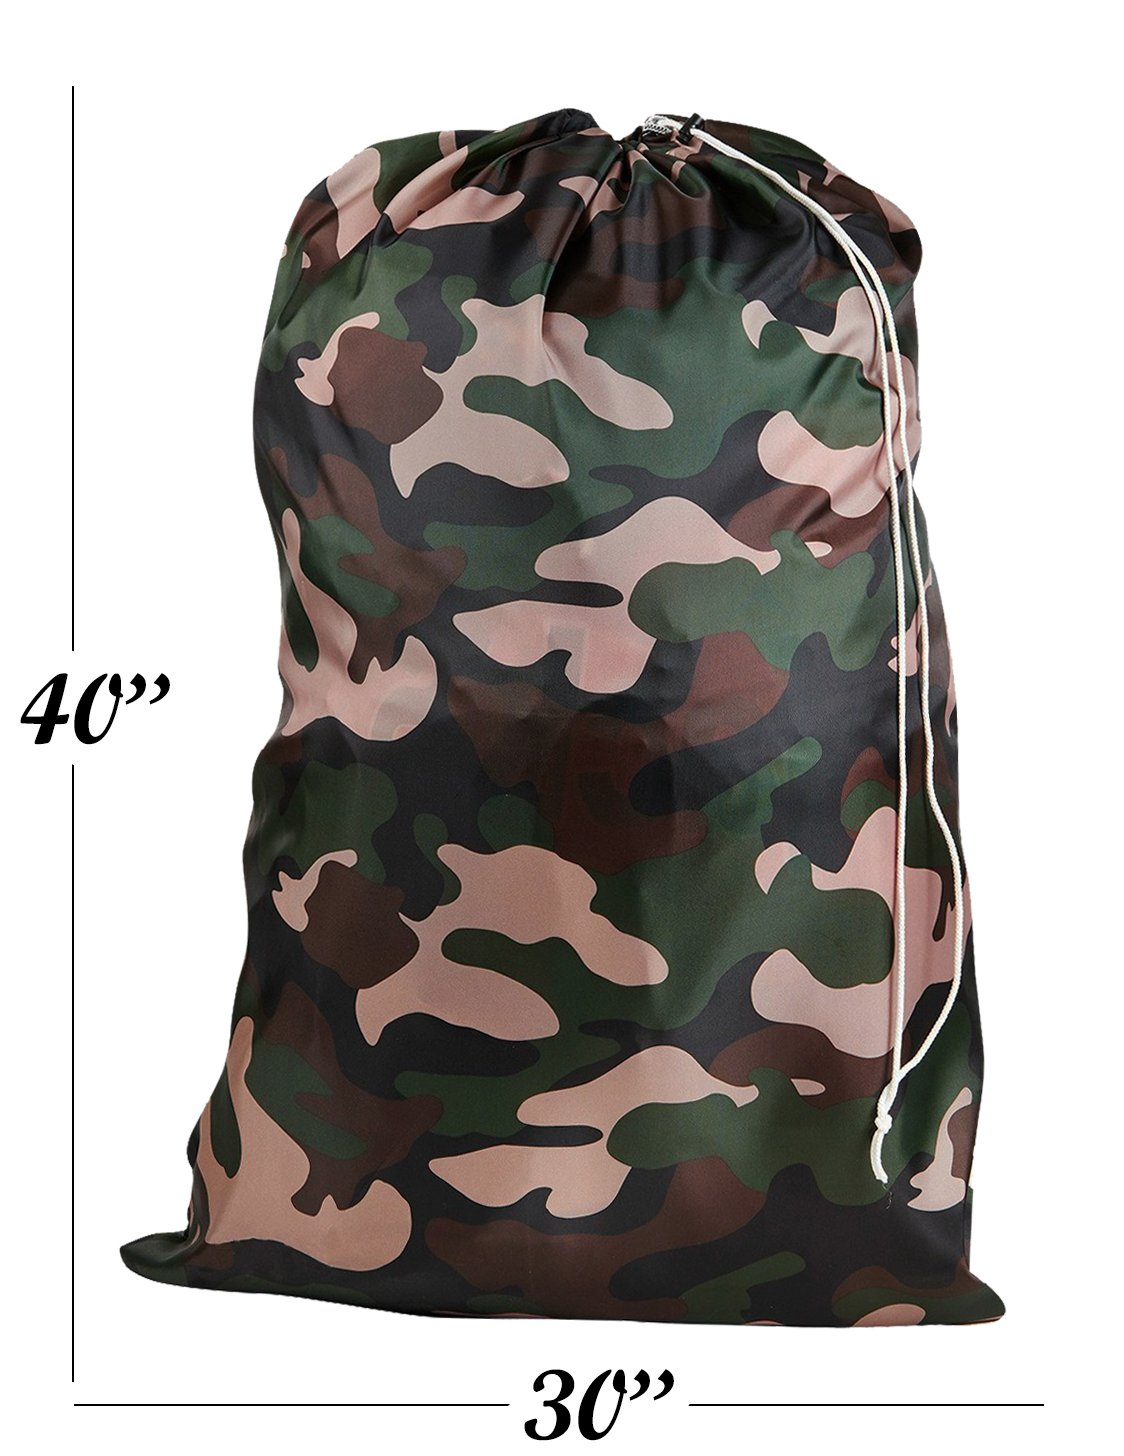 Nylon Laundry Bag - Locking Drawstring Closure and Machine Washable. These  Large Bags Will Fit a Laundry Basket or Hamper and Strong Enough to Carry  up to ... 39f1d07e96c21